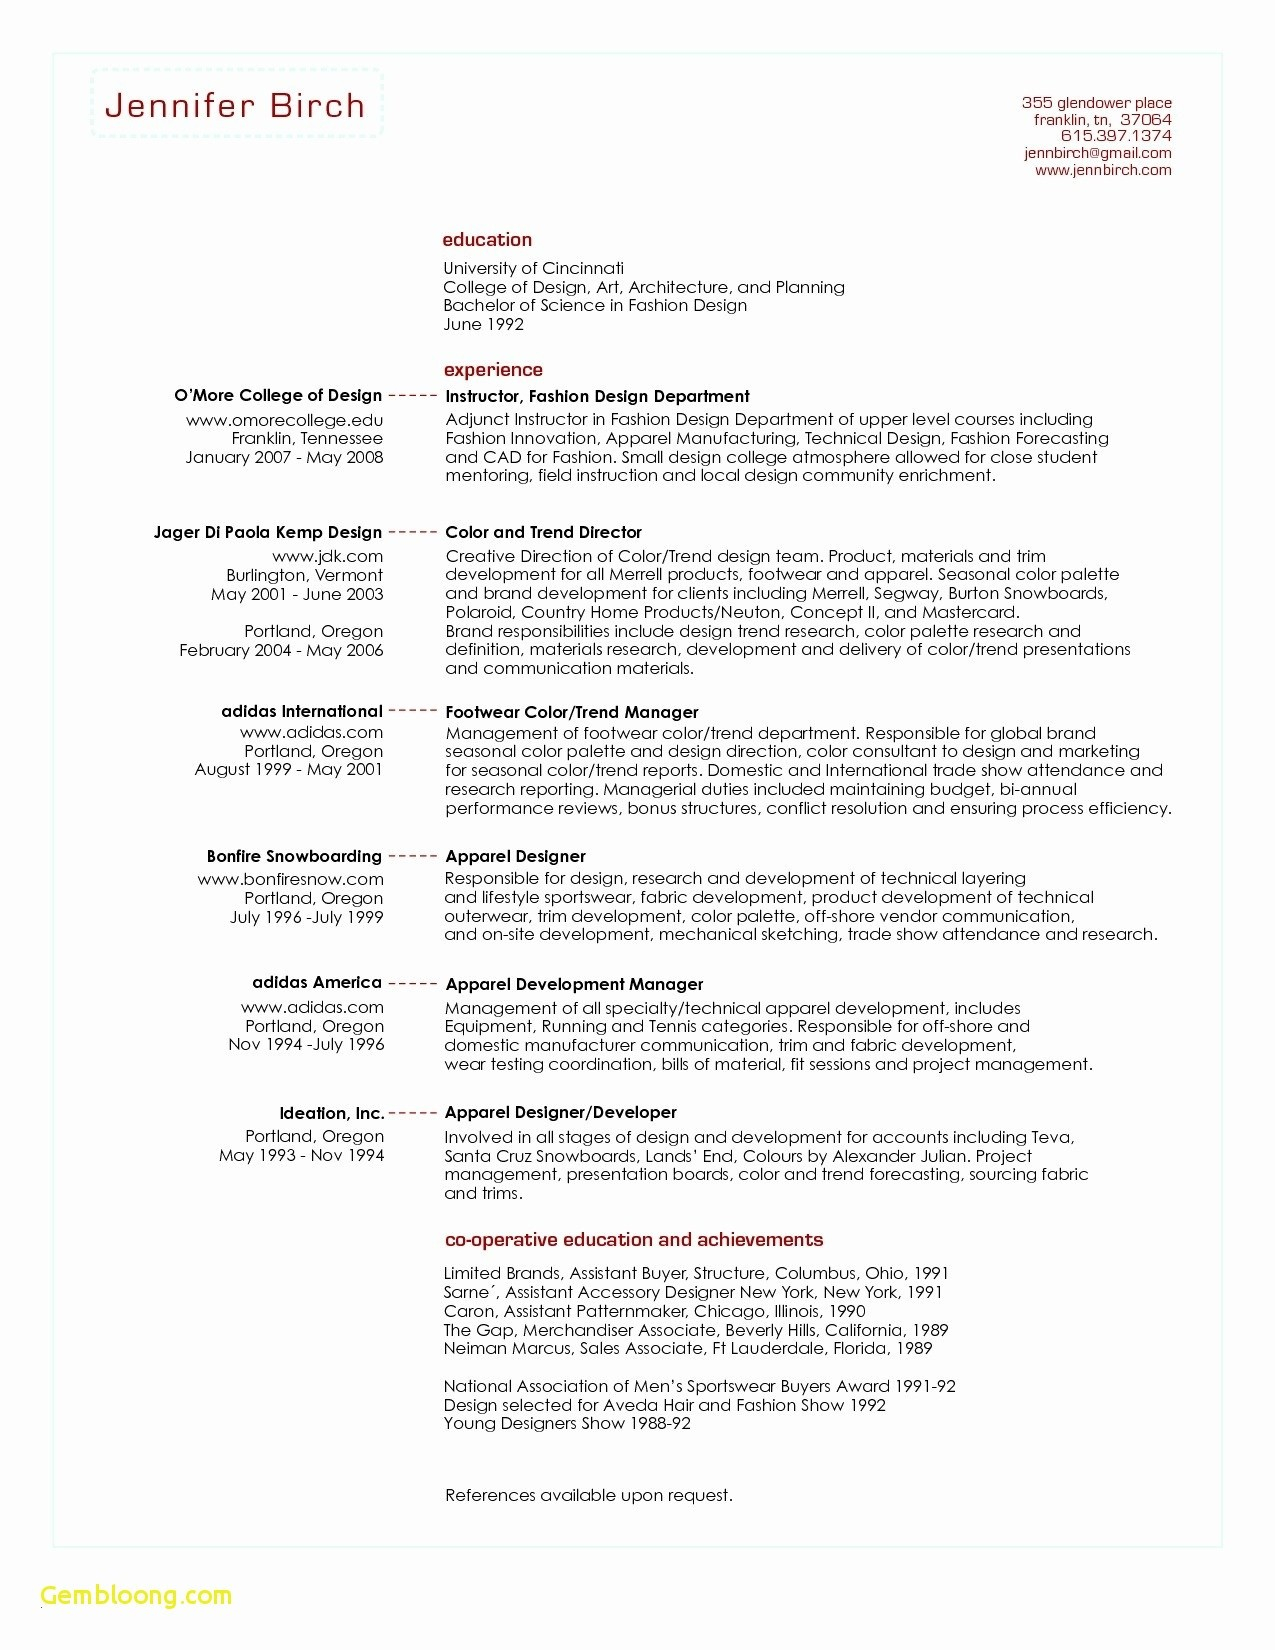 free teacher resume template Collection-Art Teacher Resume Template legalsocialmobilitypartnership 11-e